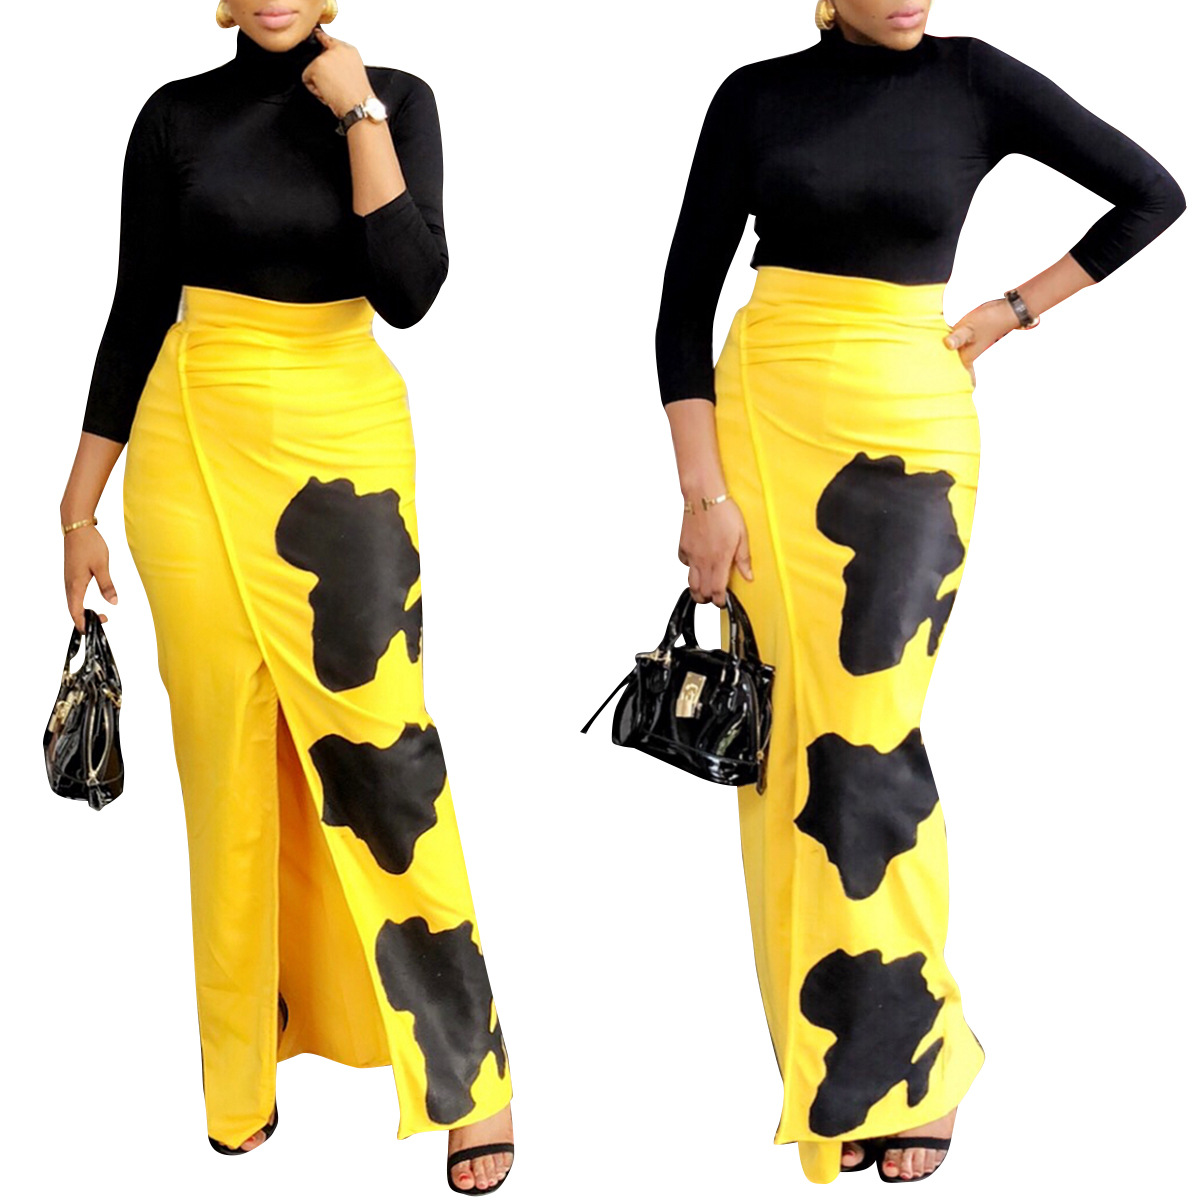 2019 Fashion African Women Skirt Summer Skirts Digital Printing Floor-Length Elegant Vestidos High Waist Vintage Skirts